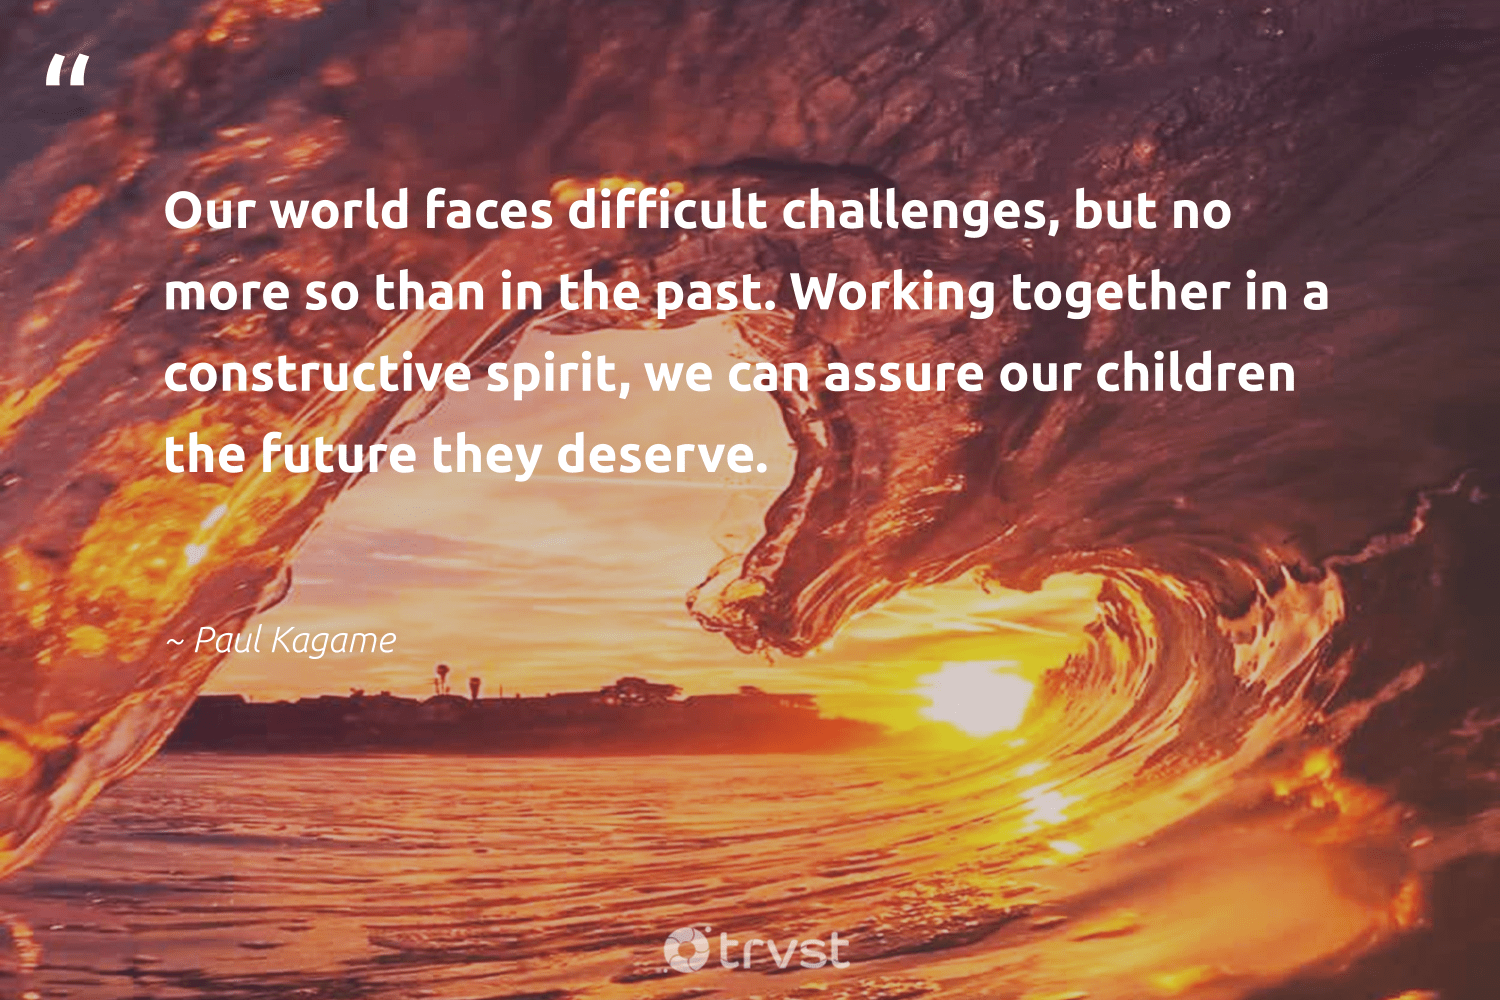 """Our world faces difficult challenges, but no more so than in the past. Working together in a constructive spirit, we can assure our children the future they deserve.""  - Paul Kagame #trvst #quotes #workingtogether #children #begreat #changetheworld #nevergiveup #socialchange #softskills #thinkgreen #futureofwork #dogood"